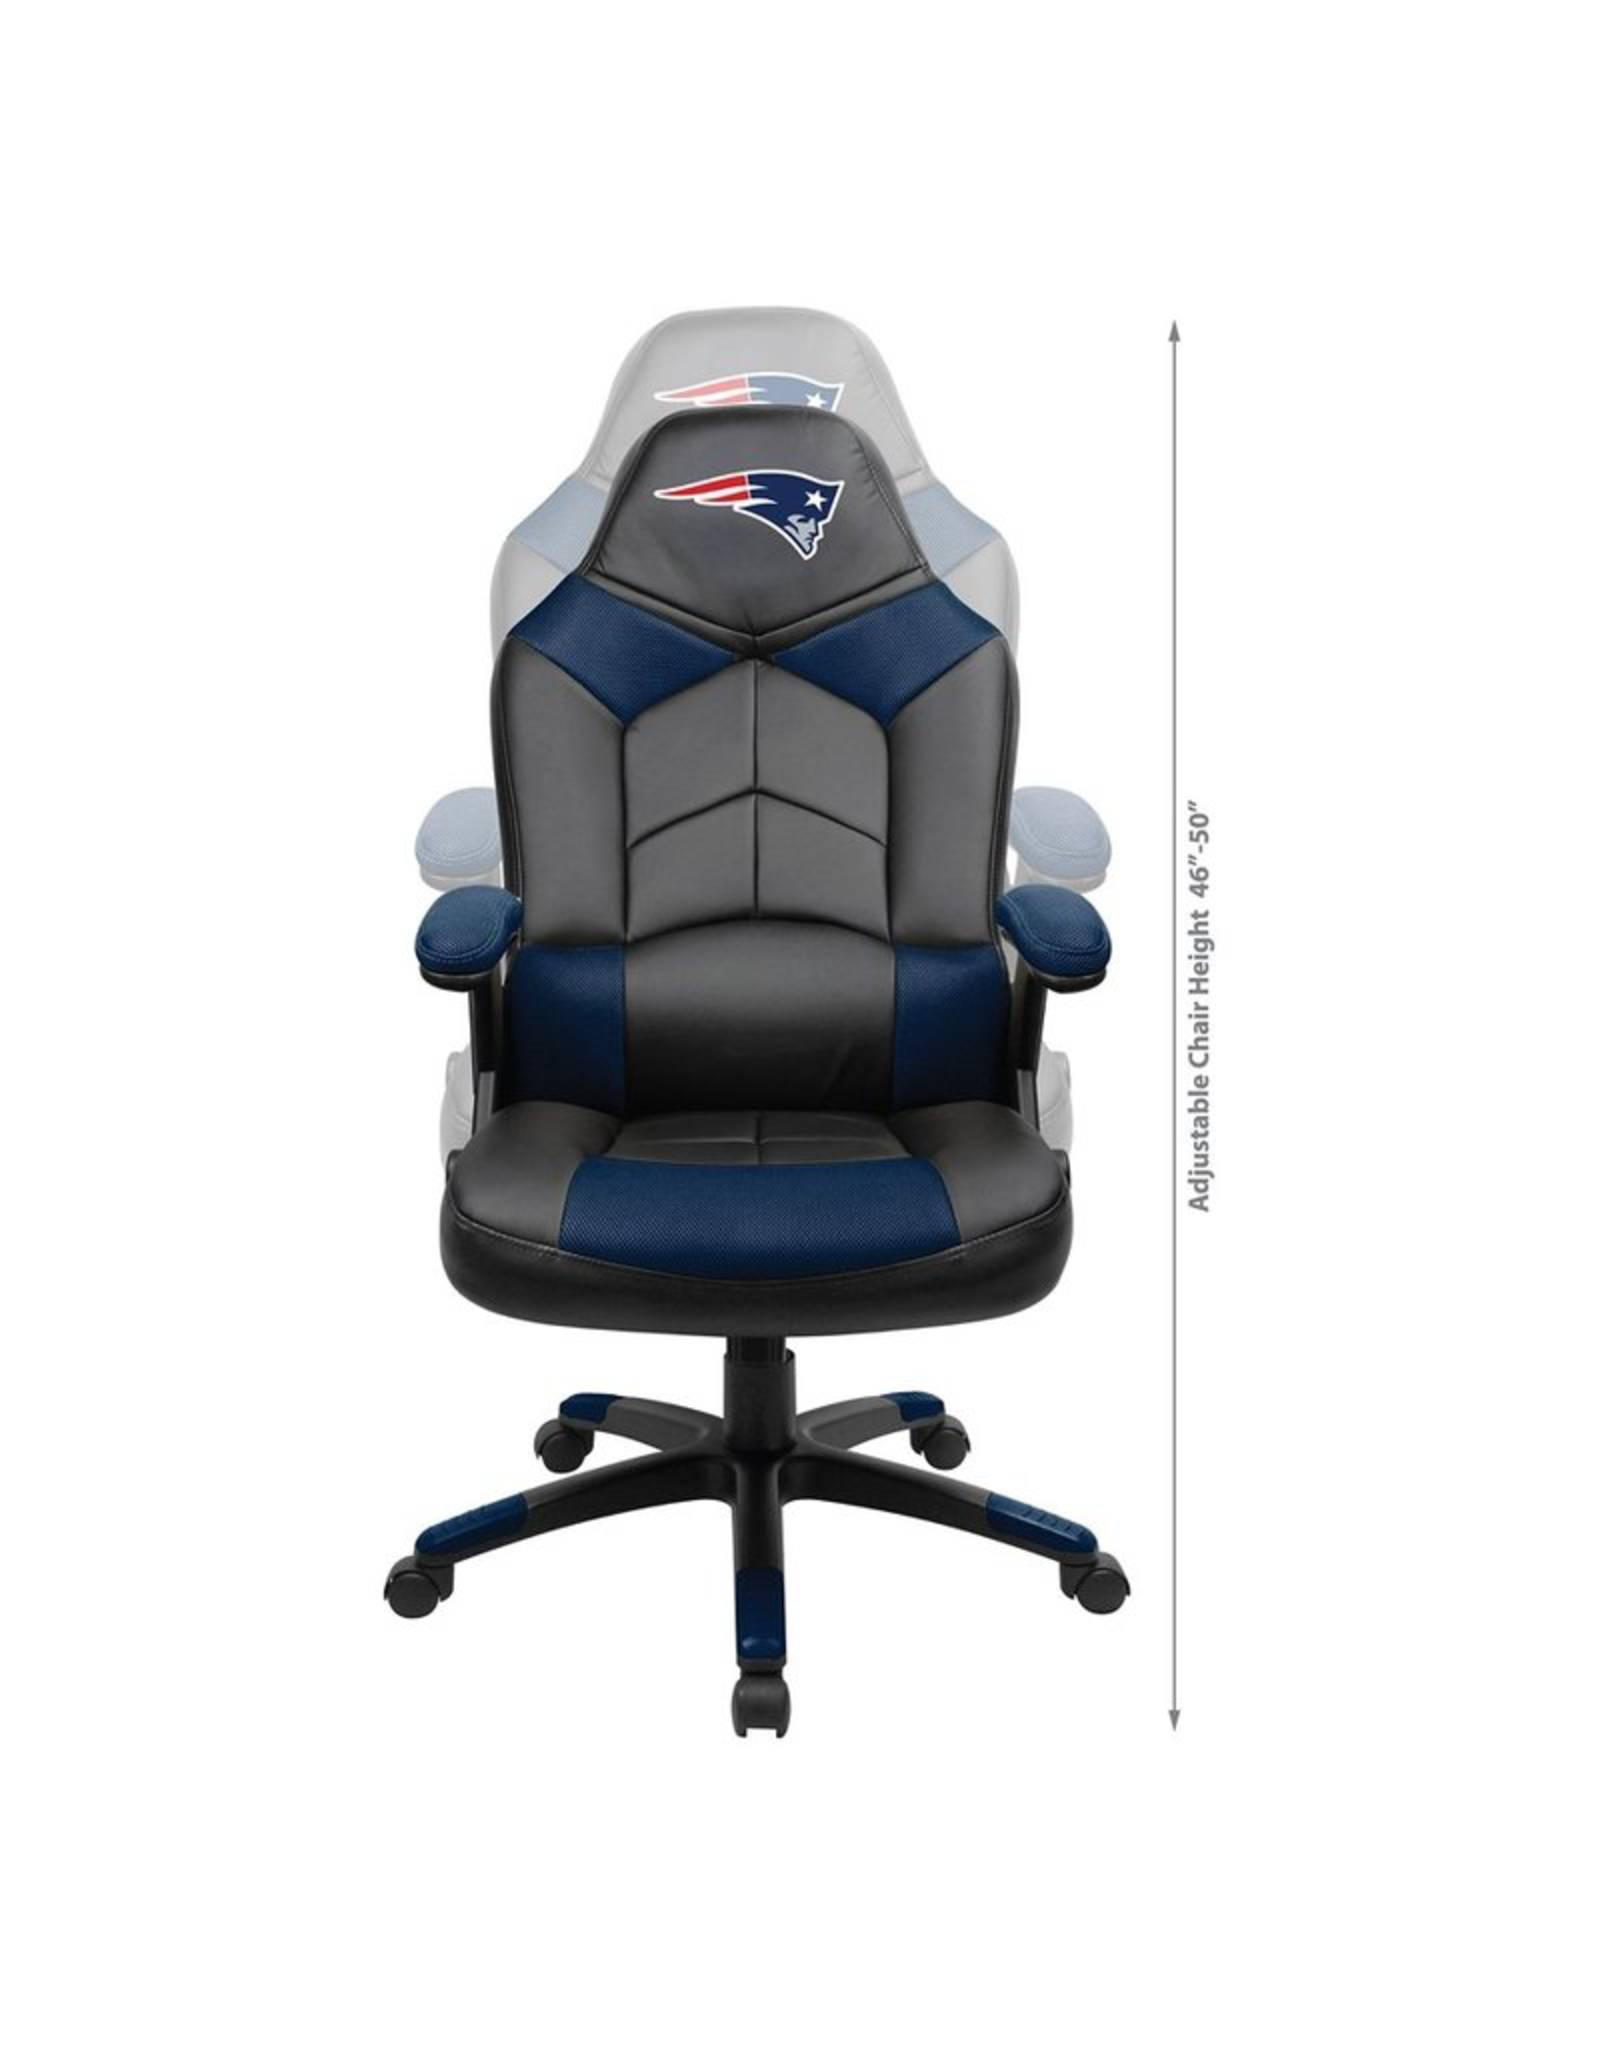 IMPERIAL New England Patriots Oversized Gaming/Office Chair